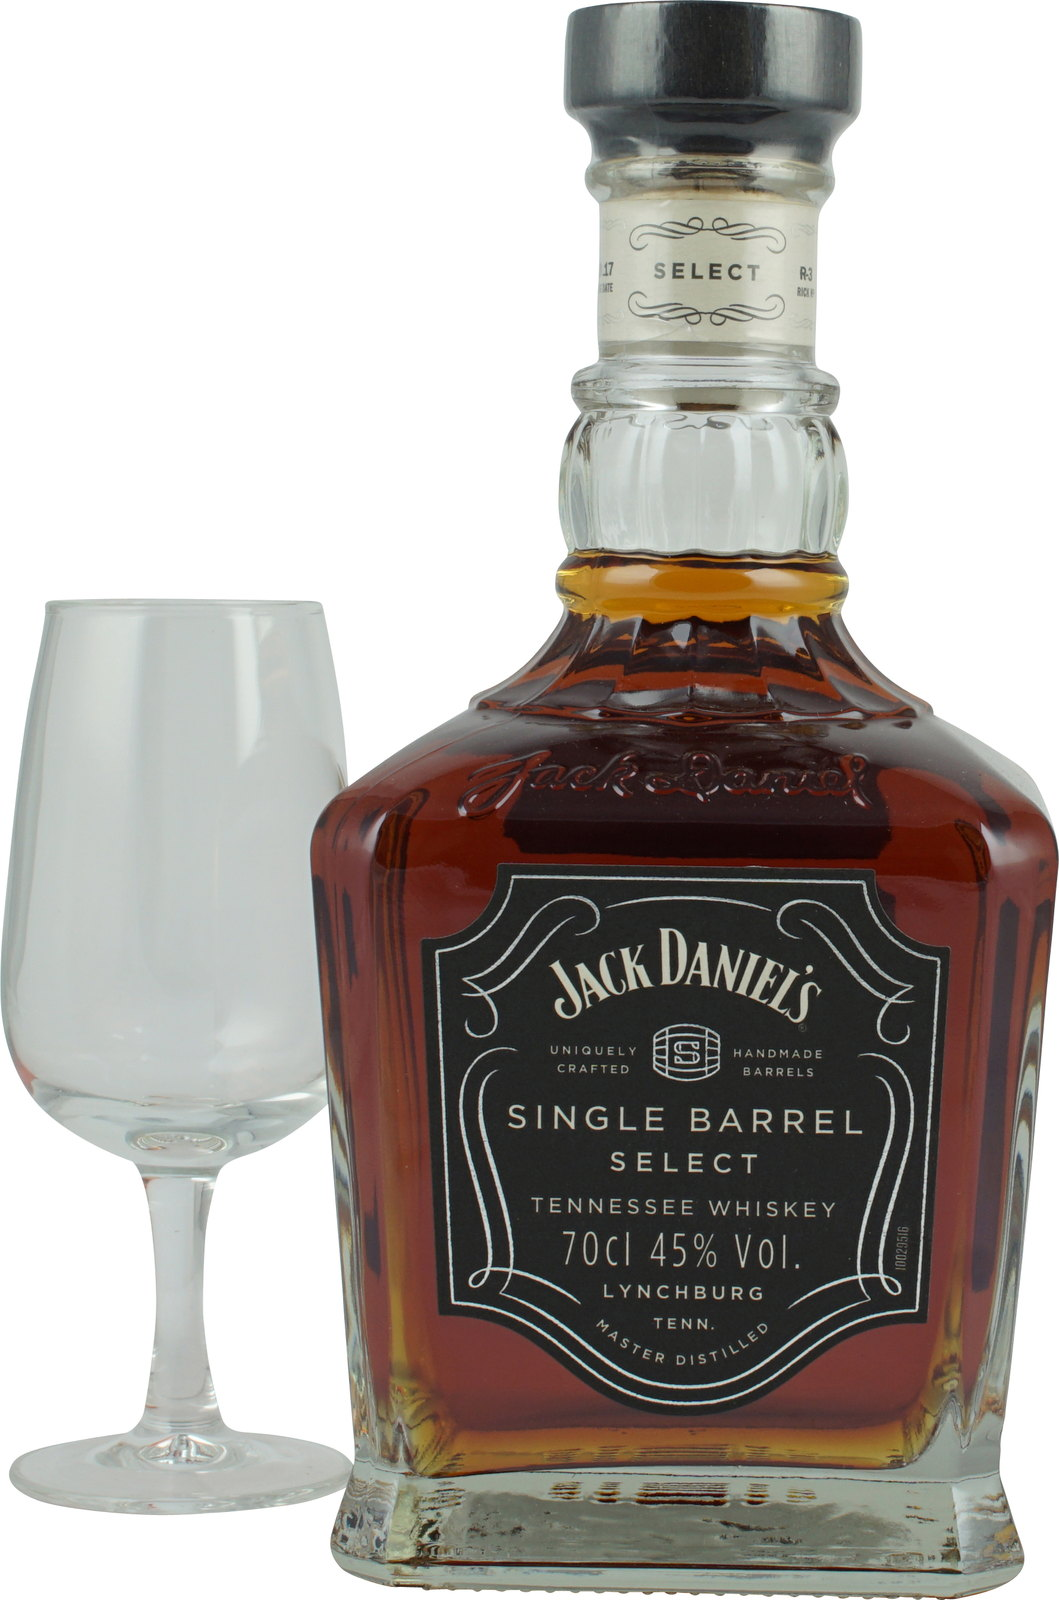 Whisky Nosing Glas Jack Daniels Single Barrel Mit Nosing Glas 700ml 45%